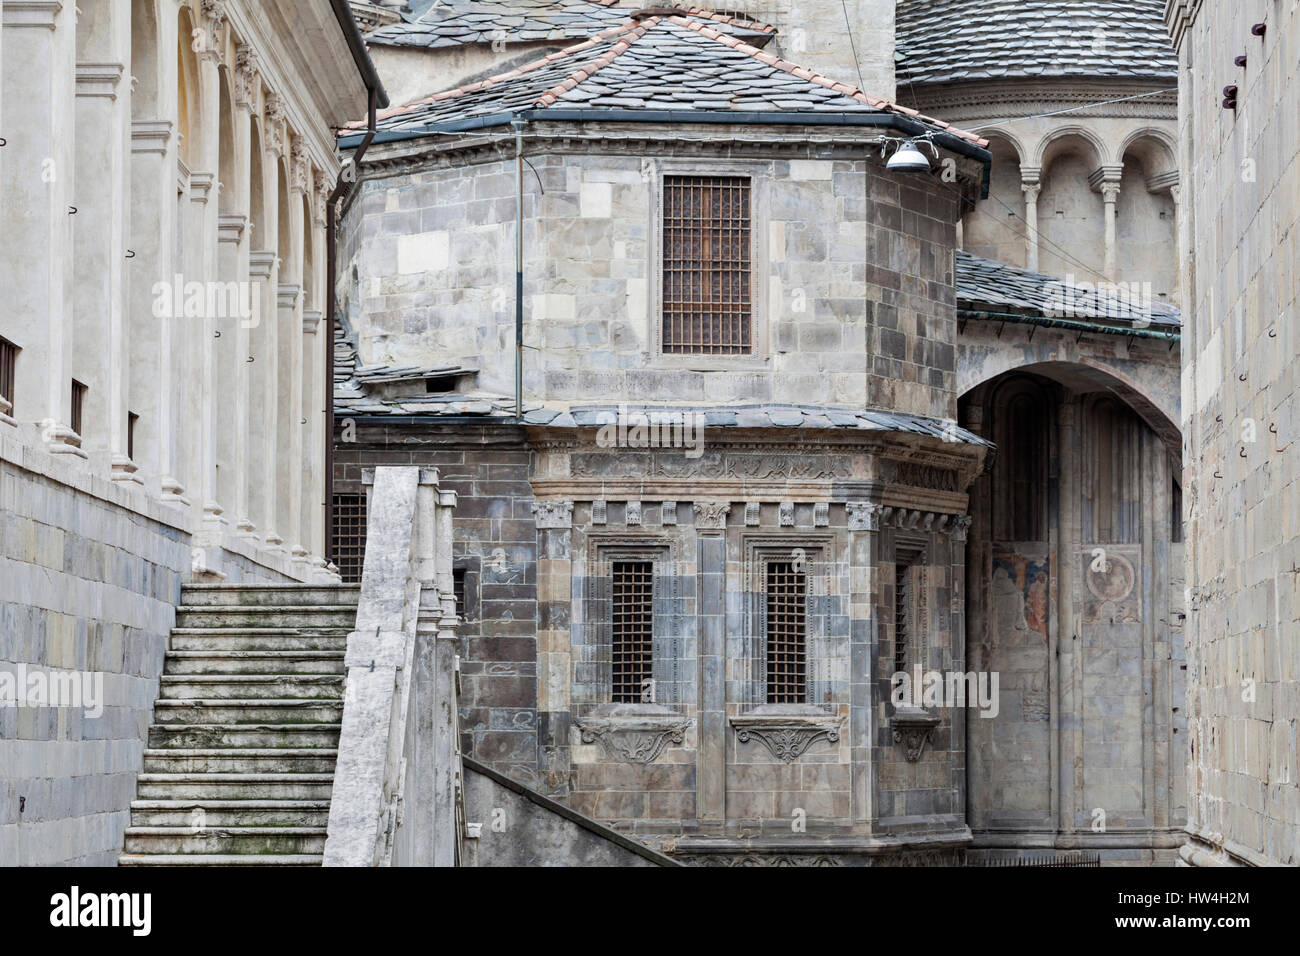 Medieval buildings in Bergamo old town, Lombardy, Italy. - Stock Image